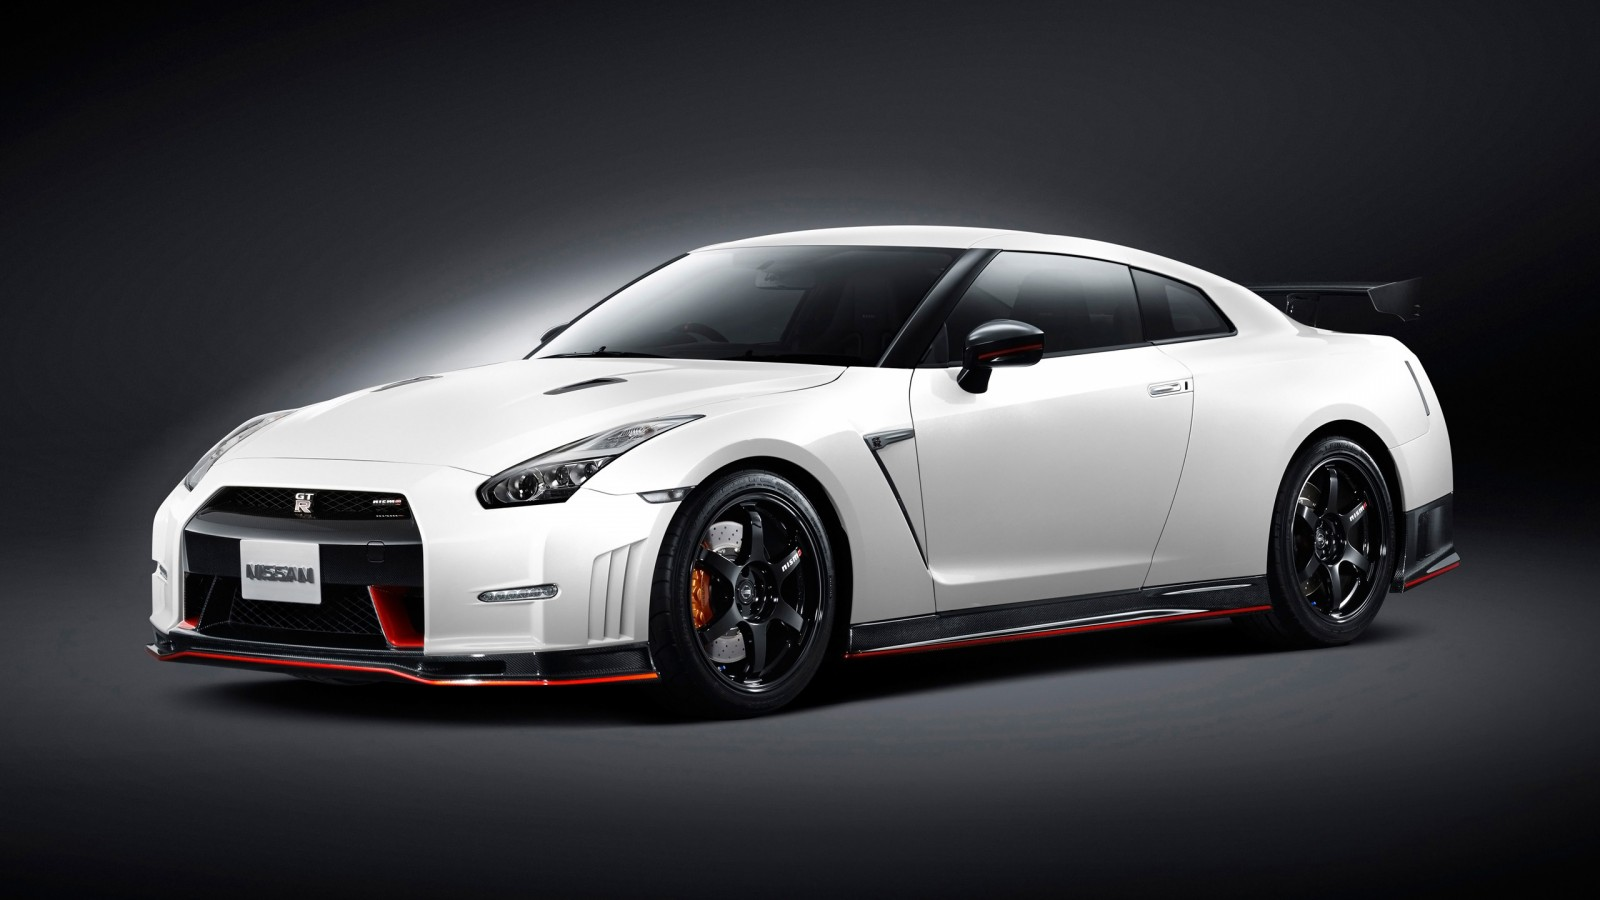 2015 nissan gt r nismo 3 wallpaper hd car wallpapers. Black Bedroom Furniture Sets. Home Design Ideas